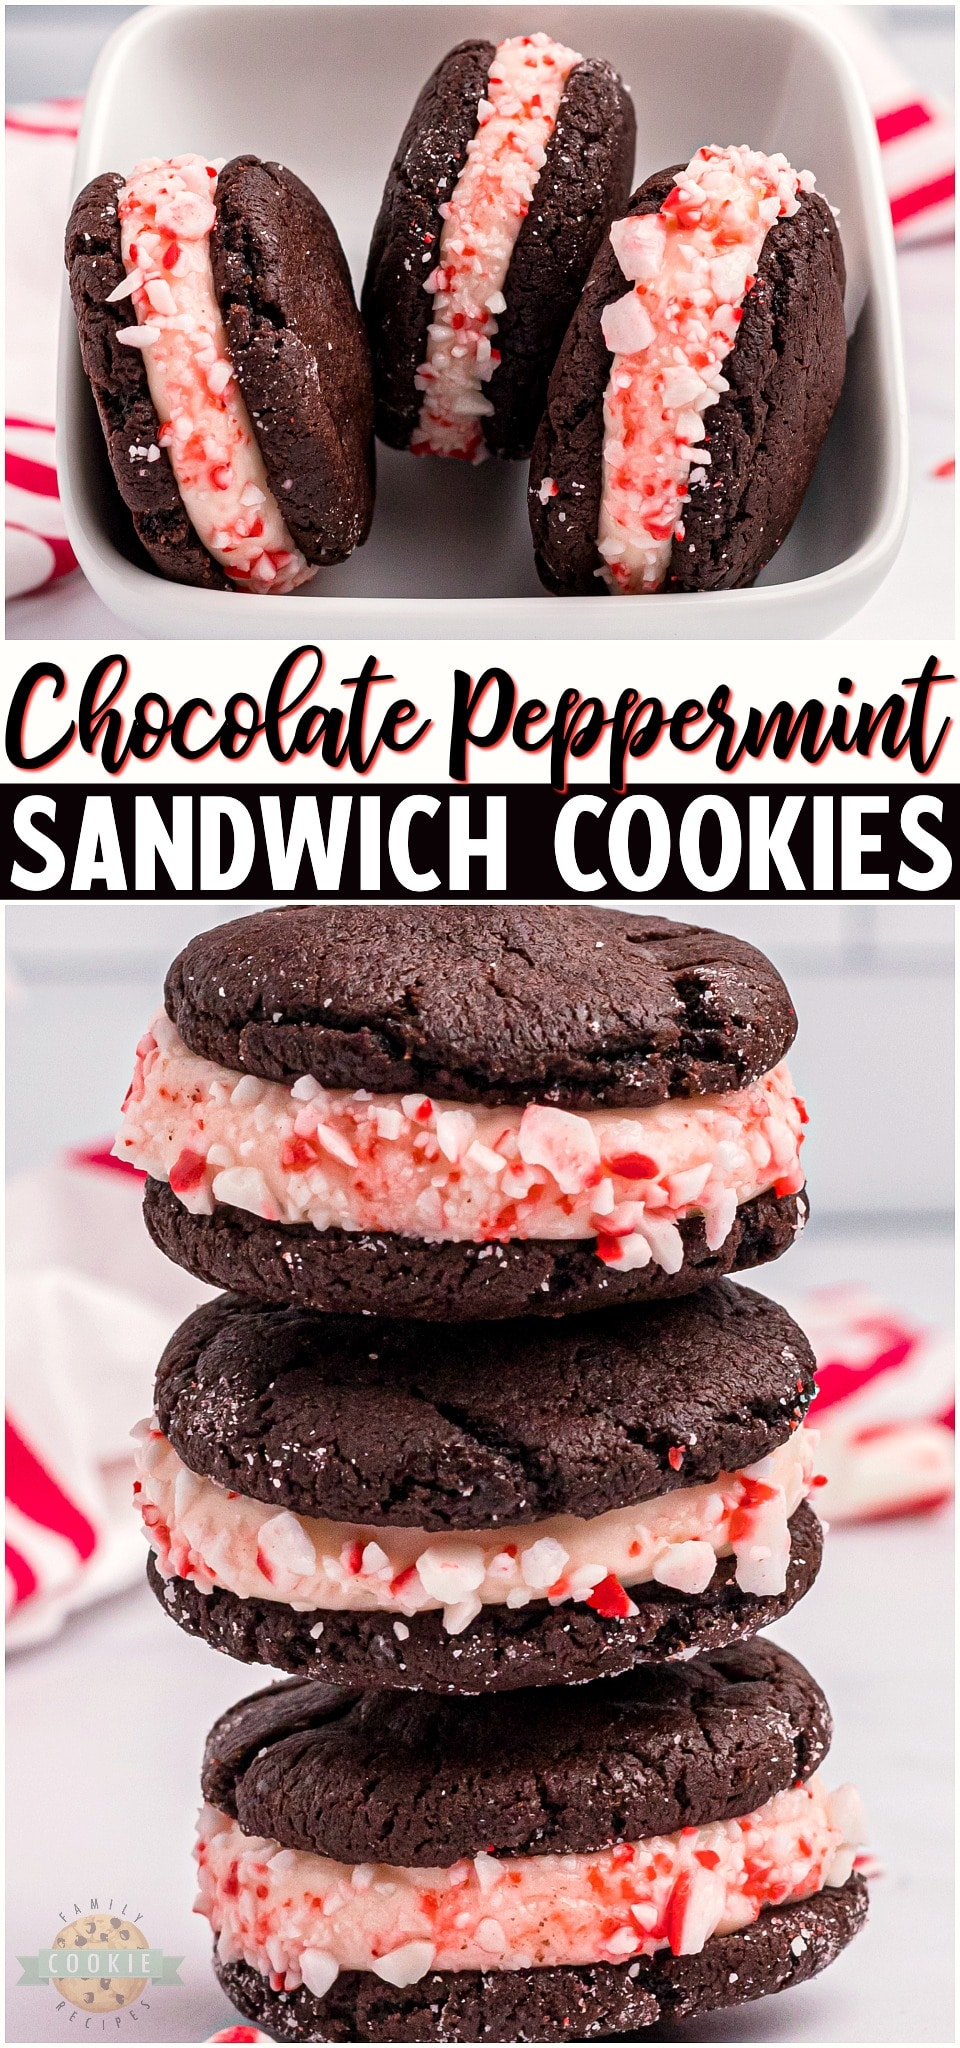 Peppermint Chocolate Sandwich Cookies are a lovely holiday treat made with soft chocolate cookies and a peppermint cheesecake filling. Perfect holiday cookies for gift giving and dessert trays! #peppermint #chocolate #cookies #baking #dessert #holidays #easyrecipe from FAMILY COOKIE RECIPES via @familycookierecipes